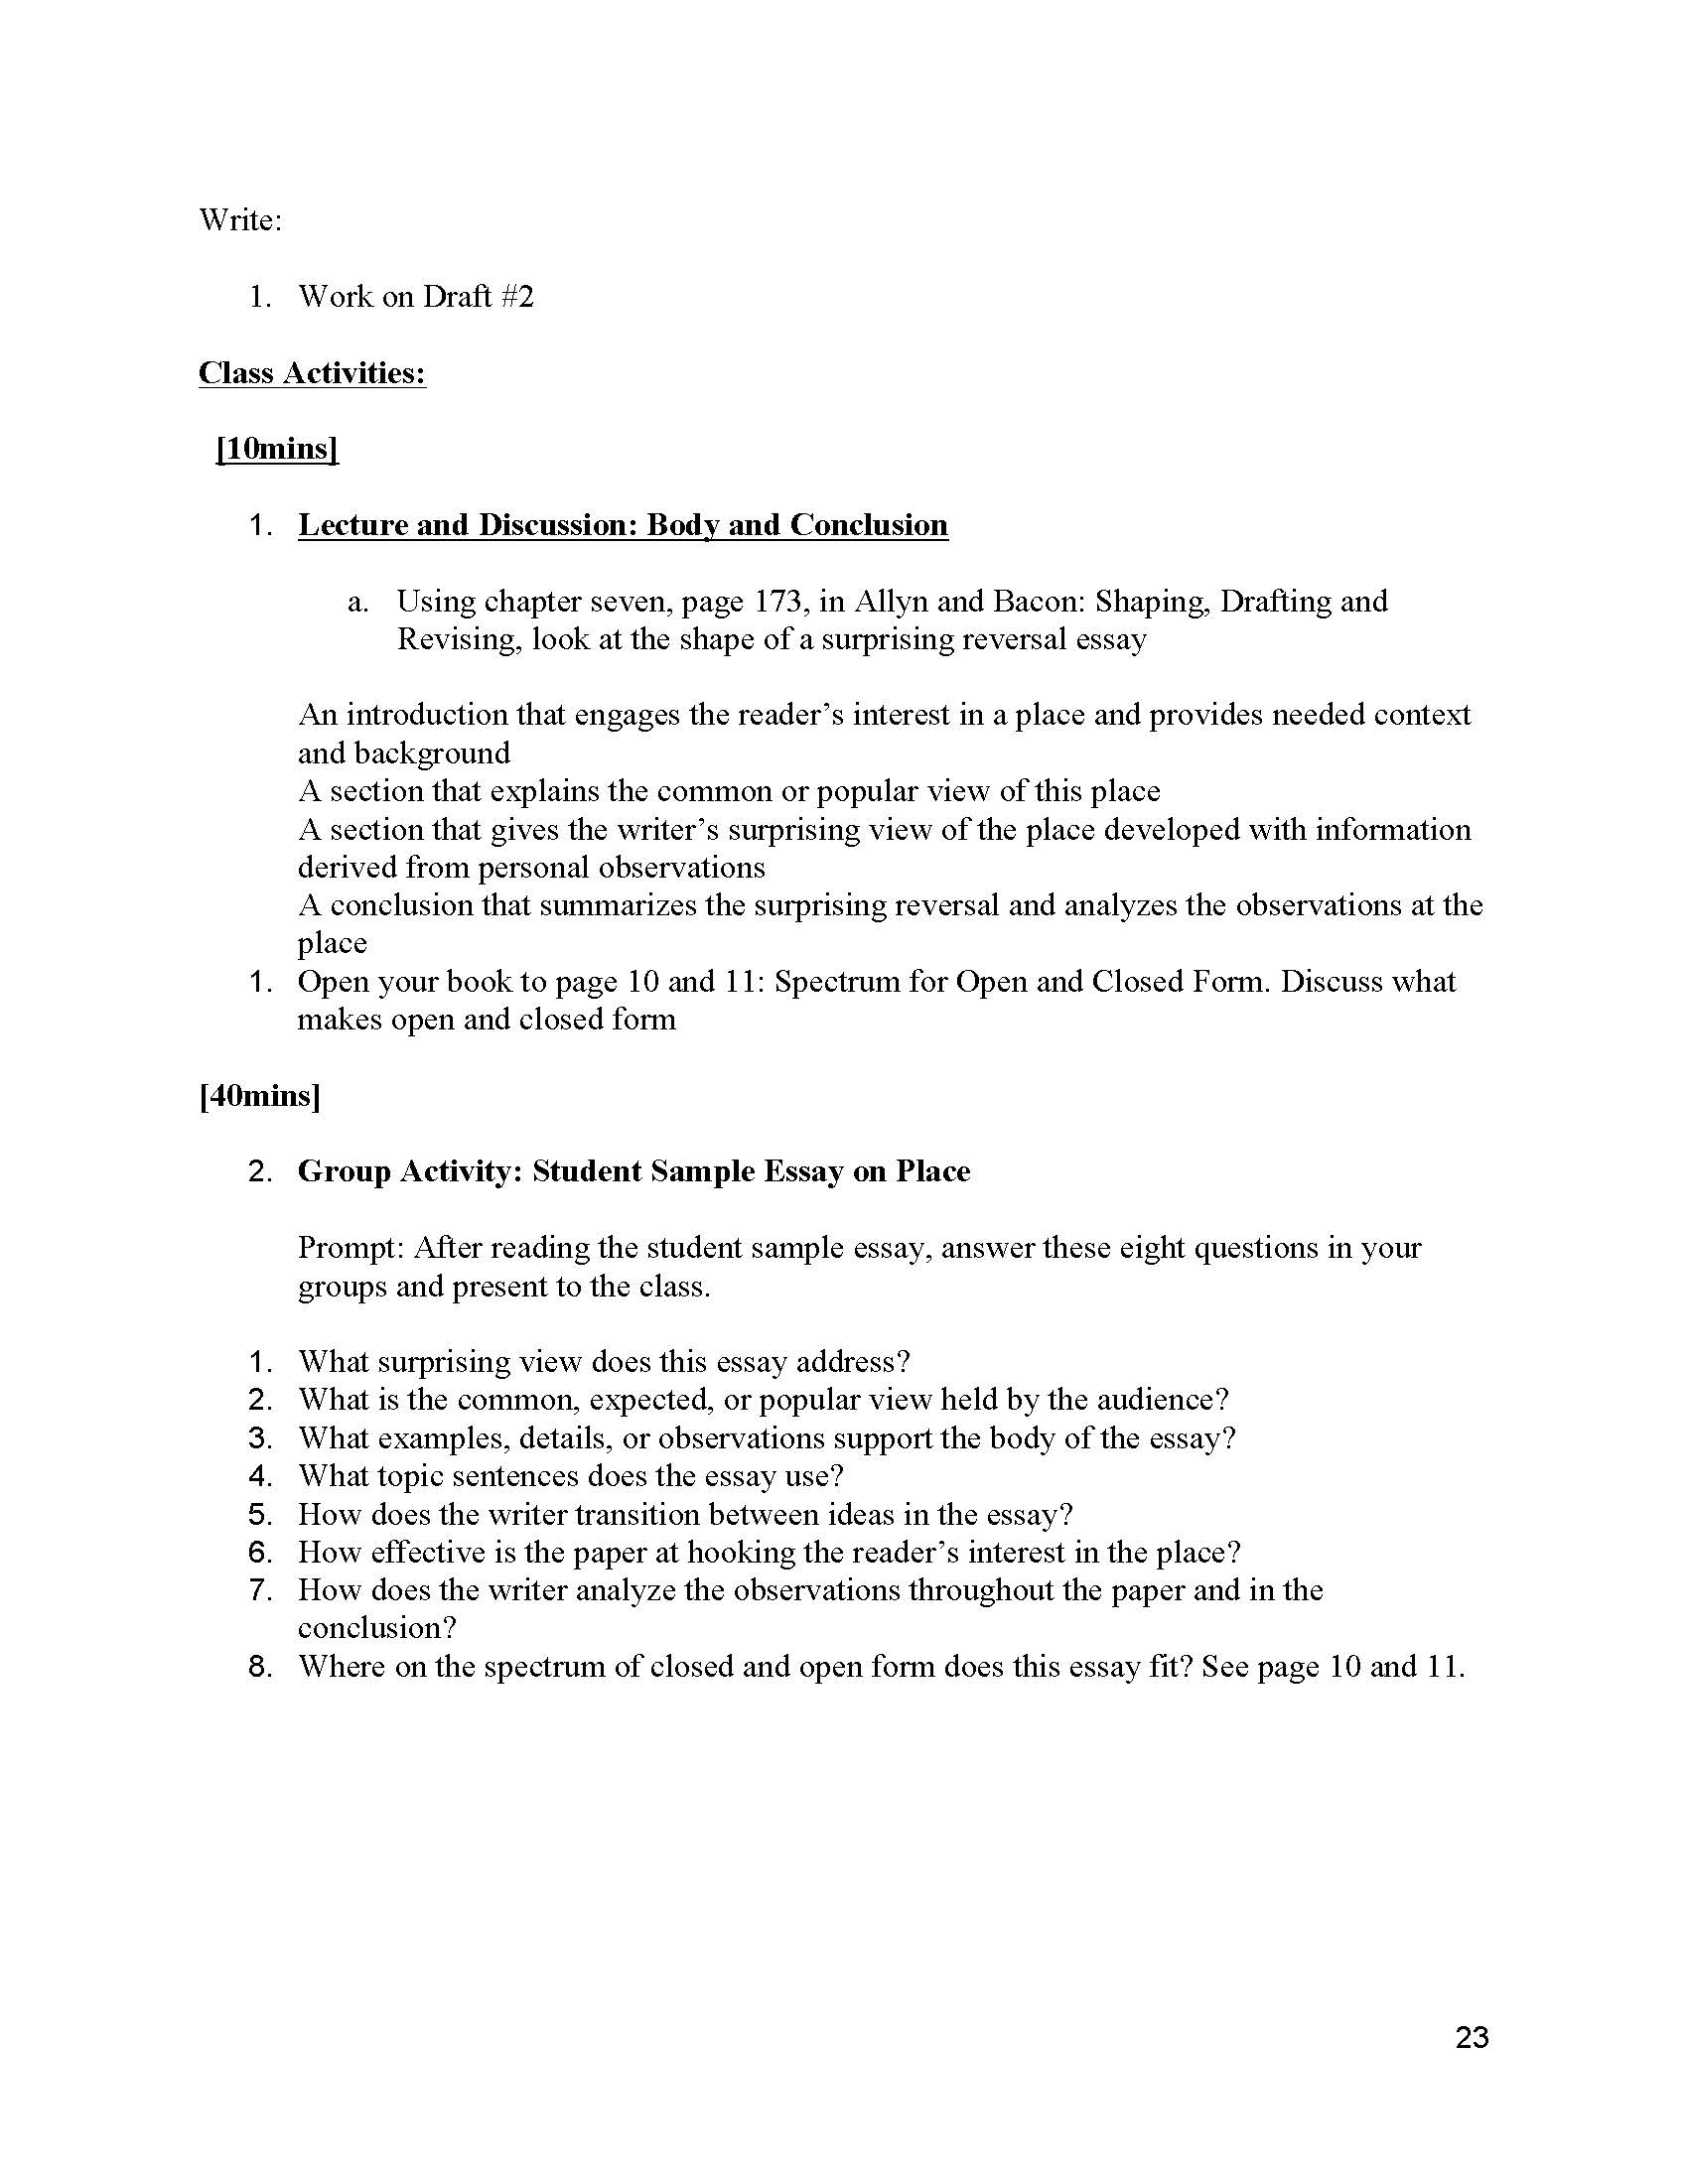 024 Informative Essay Topics Unit 2 Plans Instructor Copy Page 23 Remarkable For High School 4th Grade Expository Full